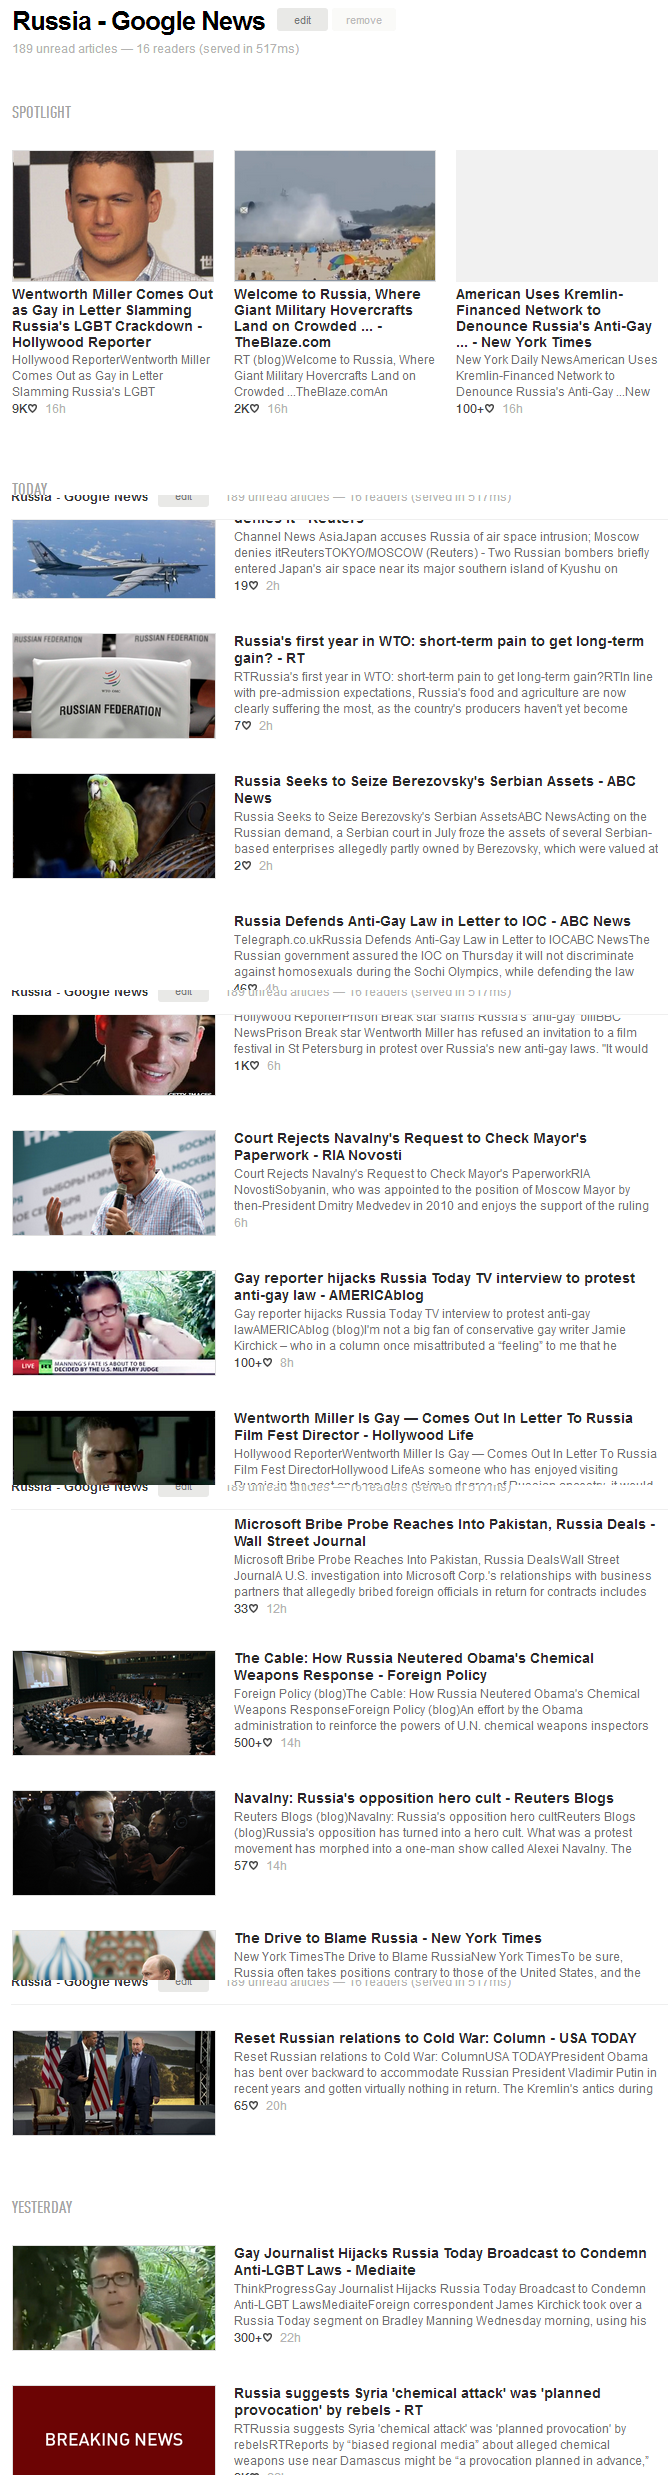 Google-News-Russia-August-22-2013